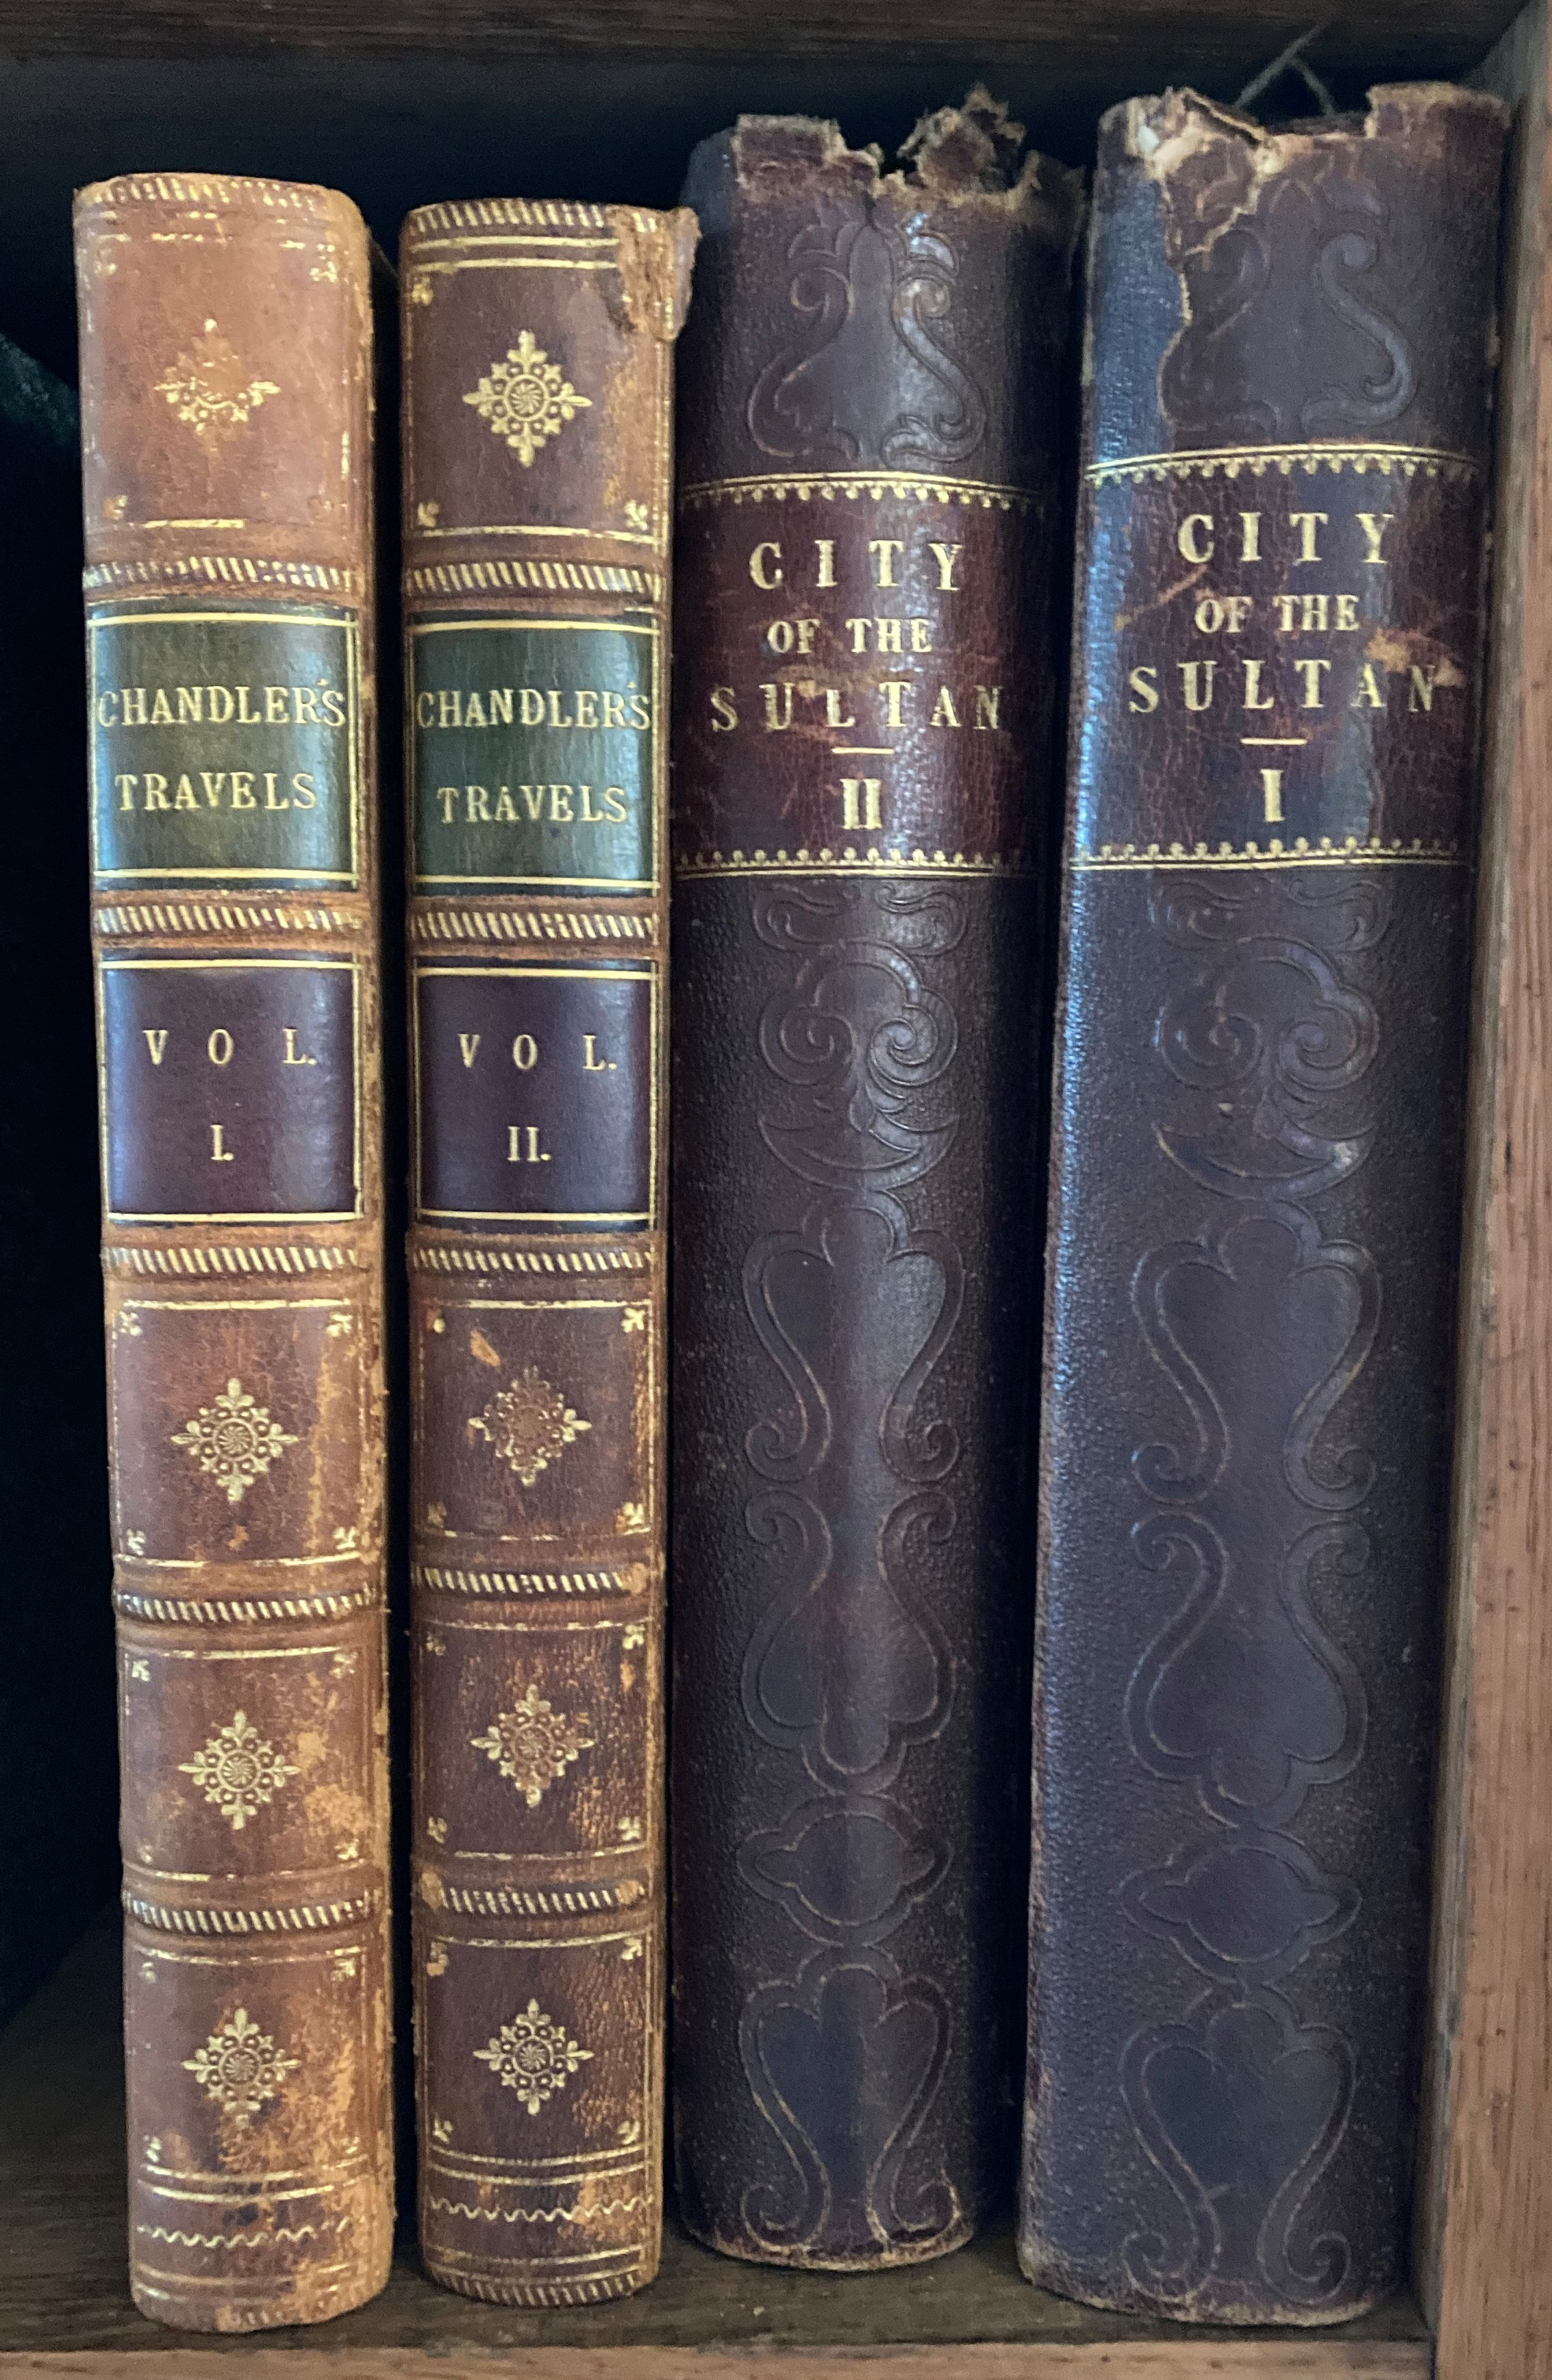 Chandler (Richard)ÿTravels in Asia Minor and Greece, 2 vols. Oxford (Clarendon Press) 1825.ÿNew - Image 3 of 3